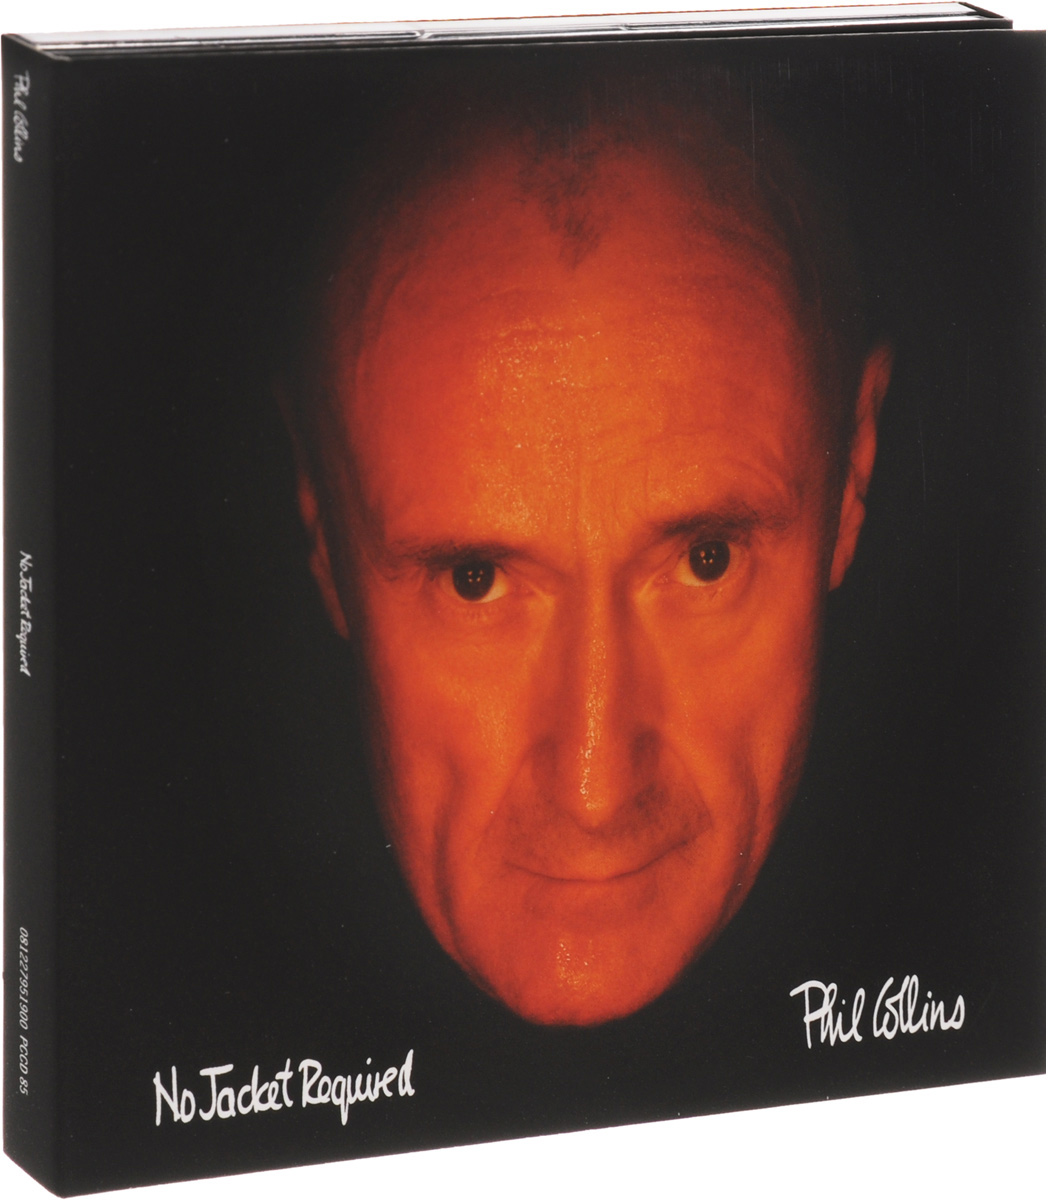 Фил Коллинз Phil Collins. No Jacket Required. Deluxe Edition (2 CD) collins essential chinese dictionary